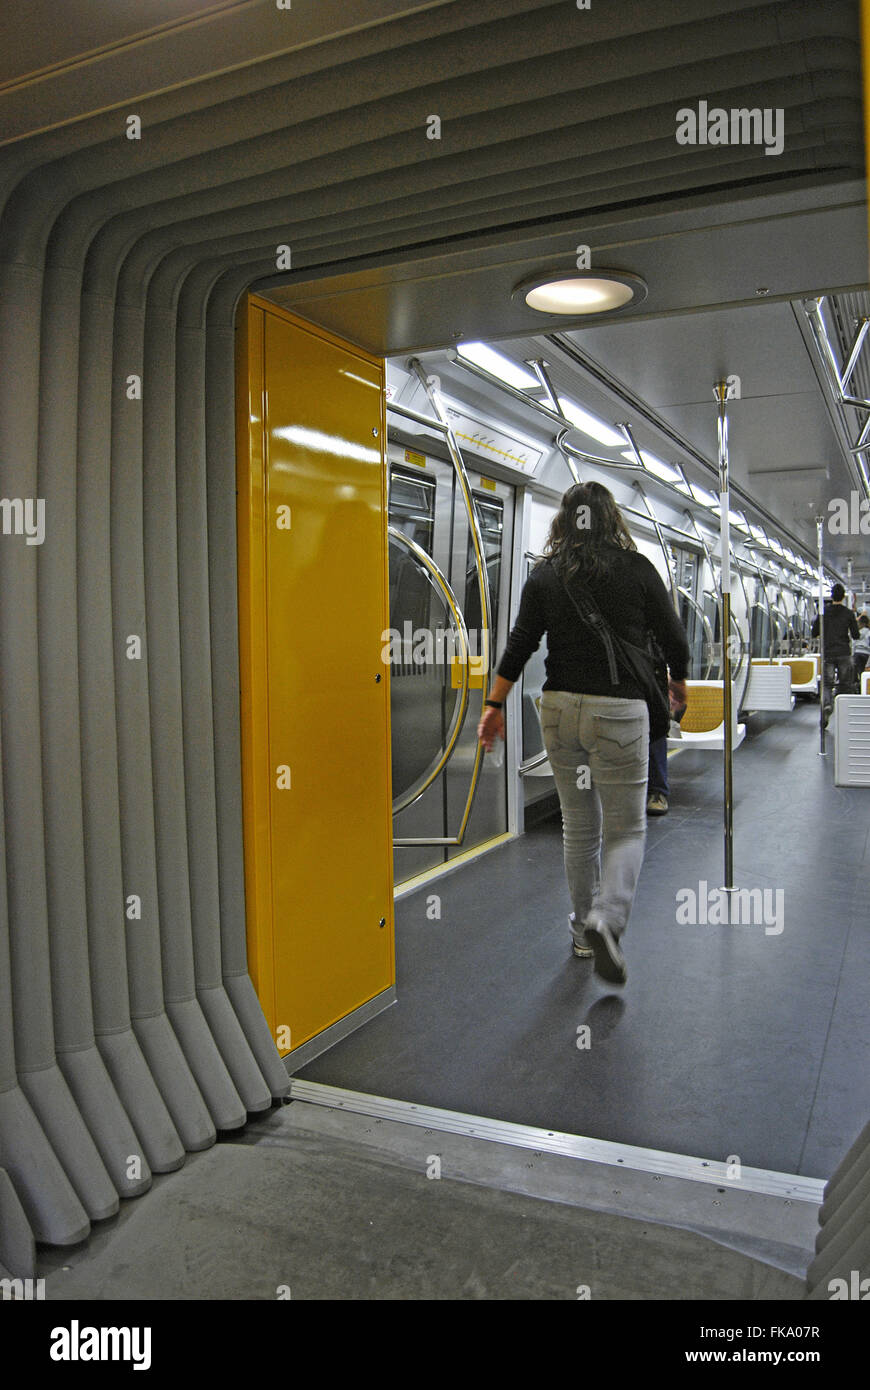 Inside the wagon the yellow line of the Metro - Stock Image